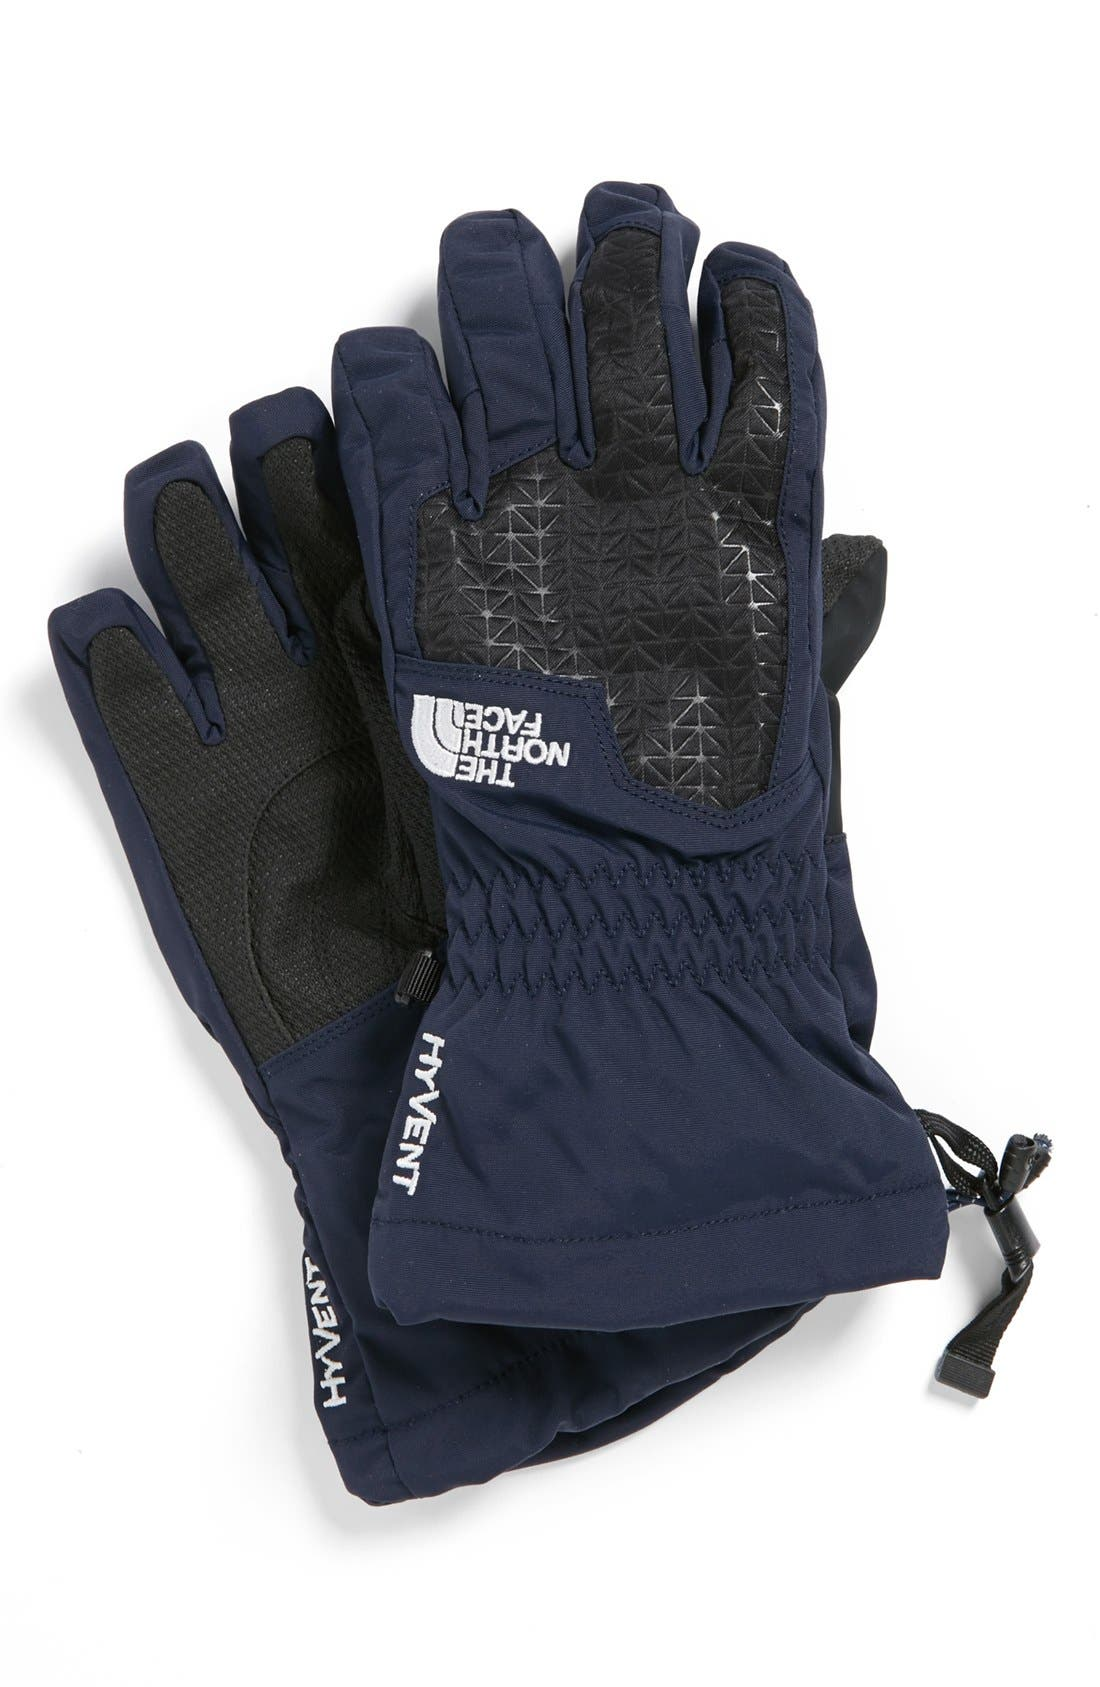 Alternate Image 1 Selected - The North Face 'Montana' Waterproof Gloves (Boys)